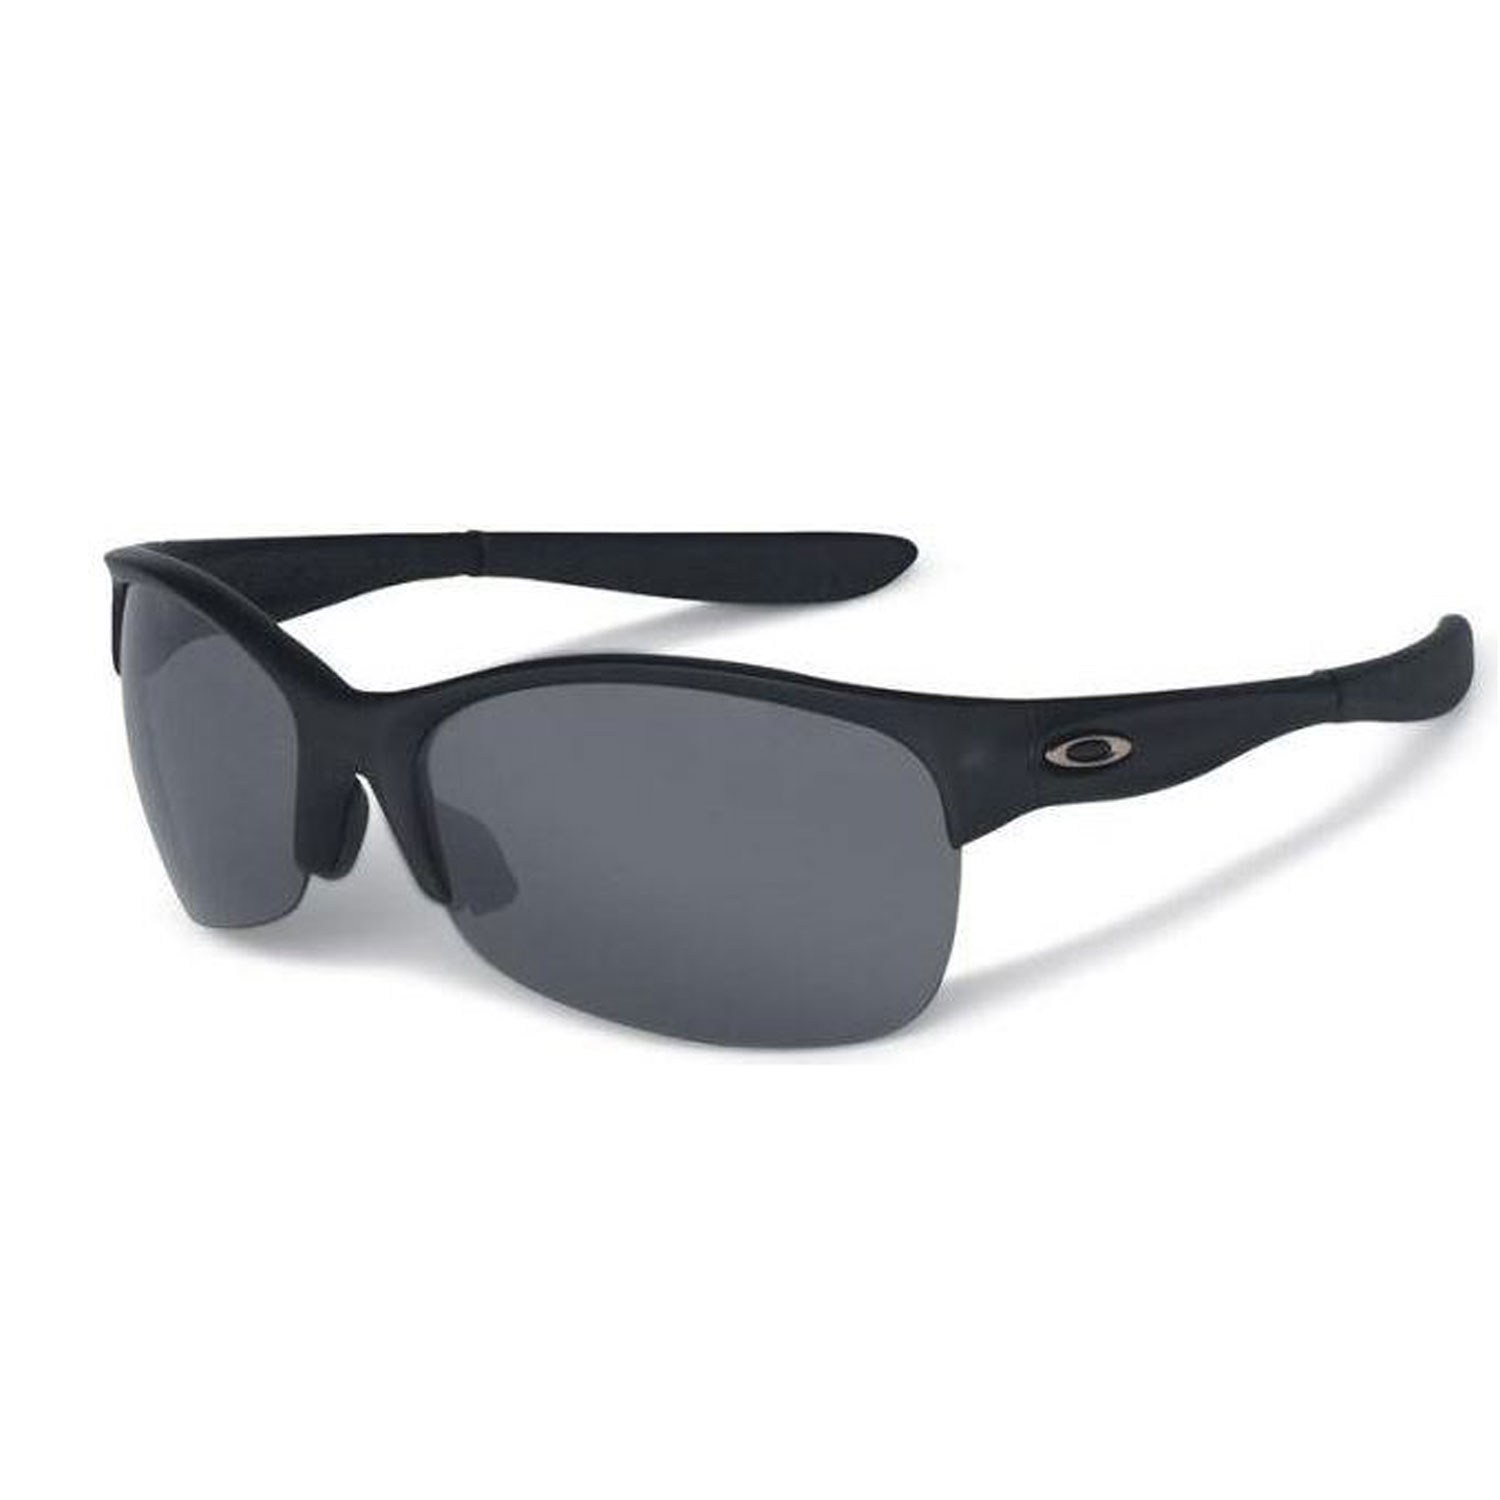 Oakley AV Commit Sunglasses